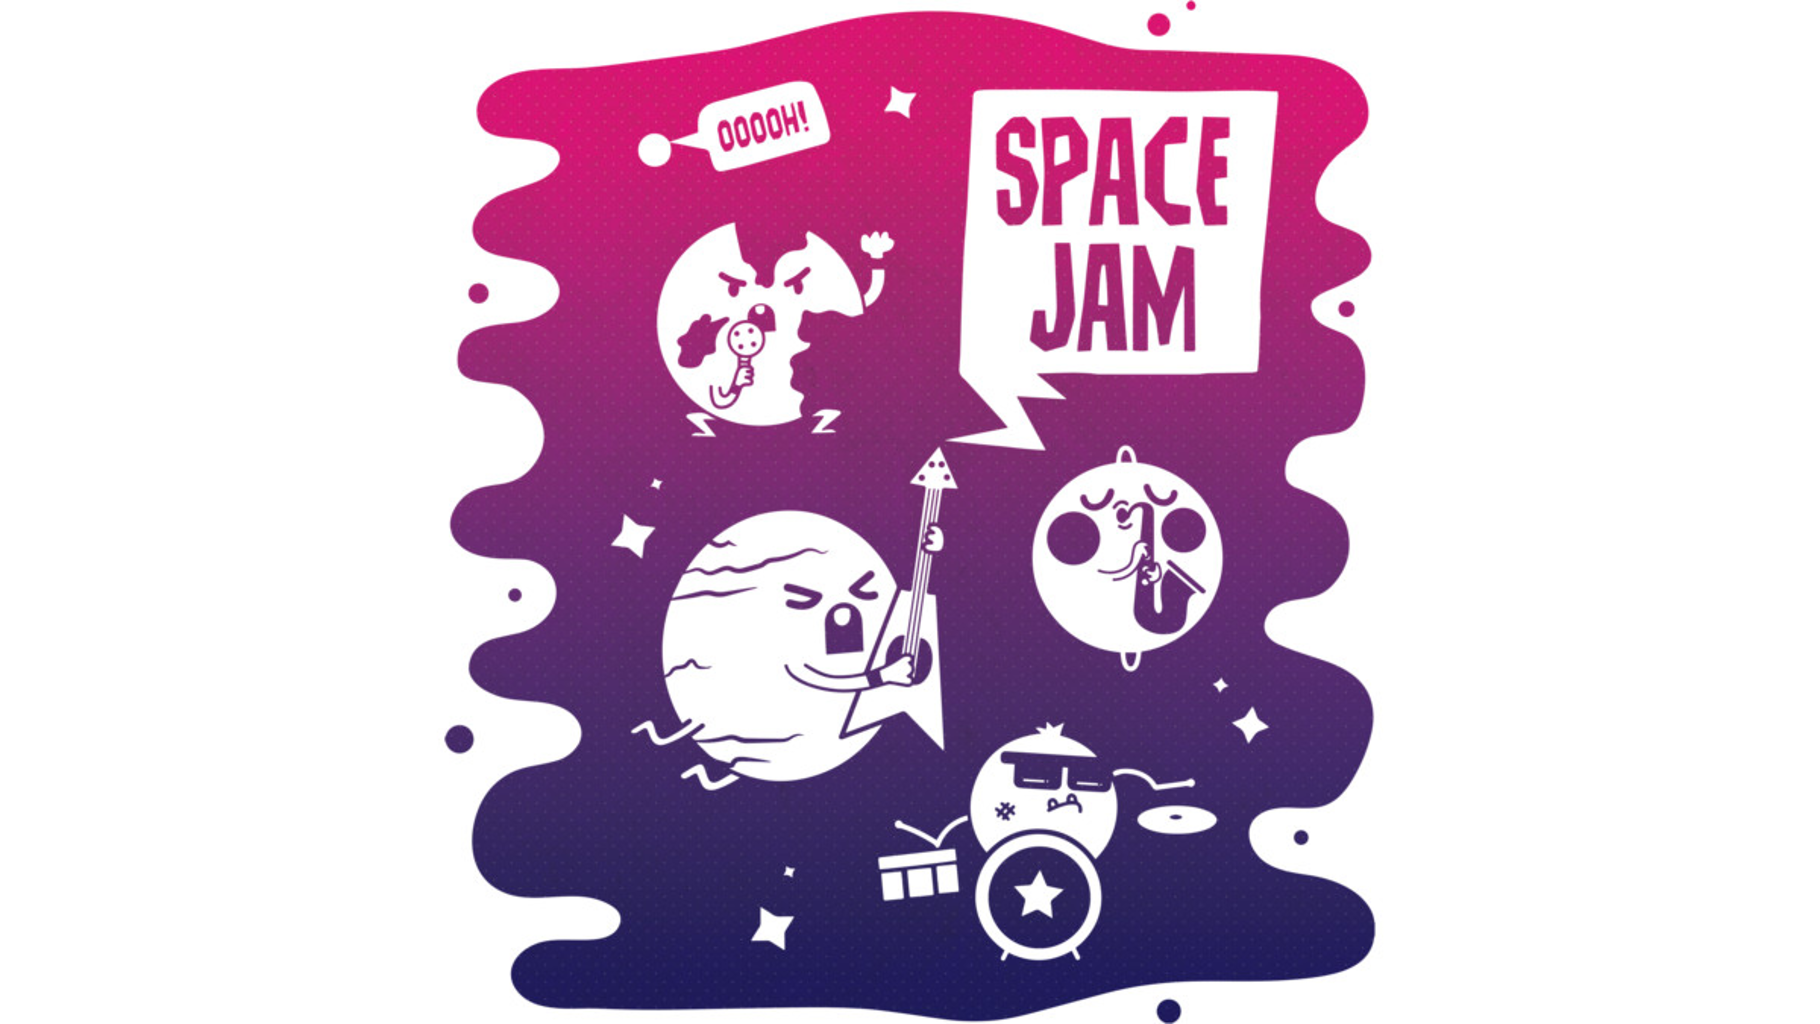 Design by Humans: Space Jam